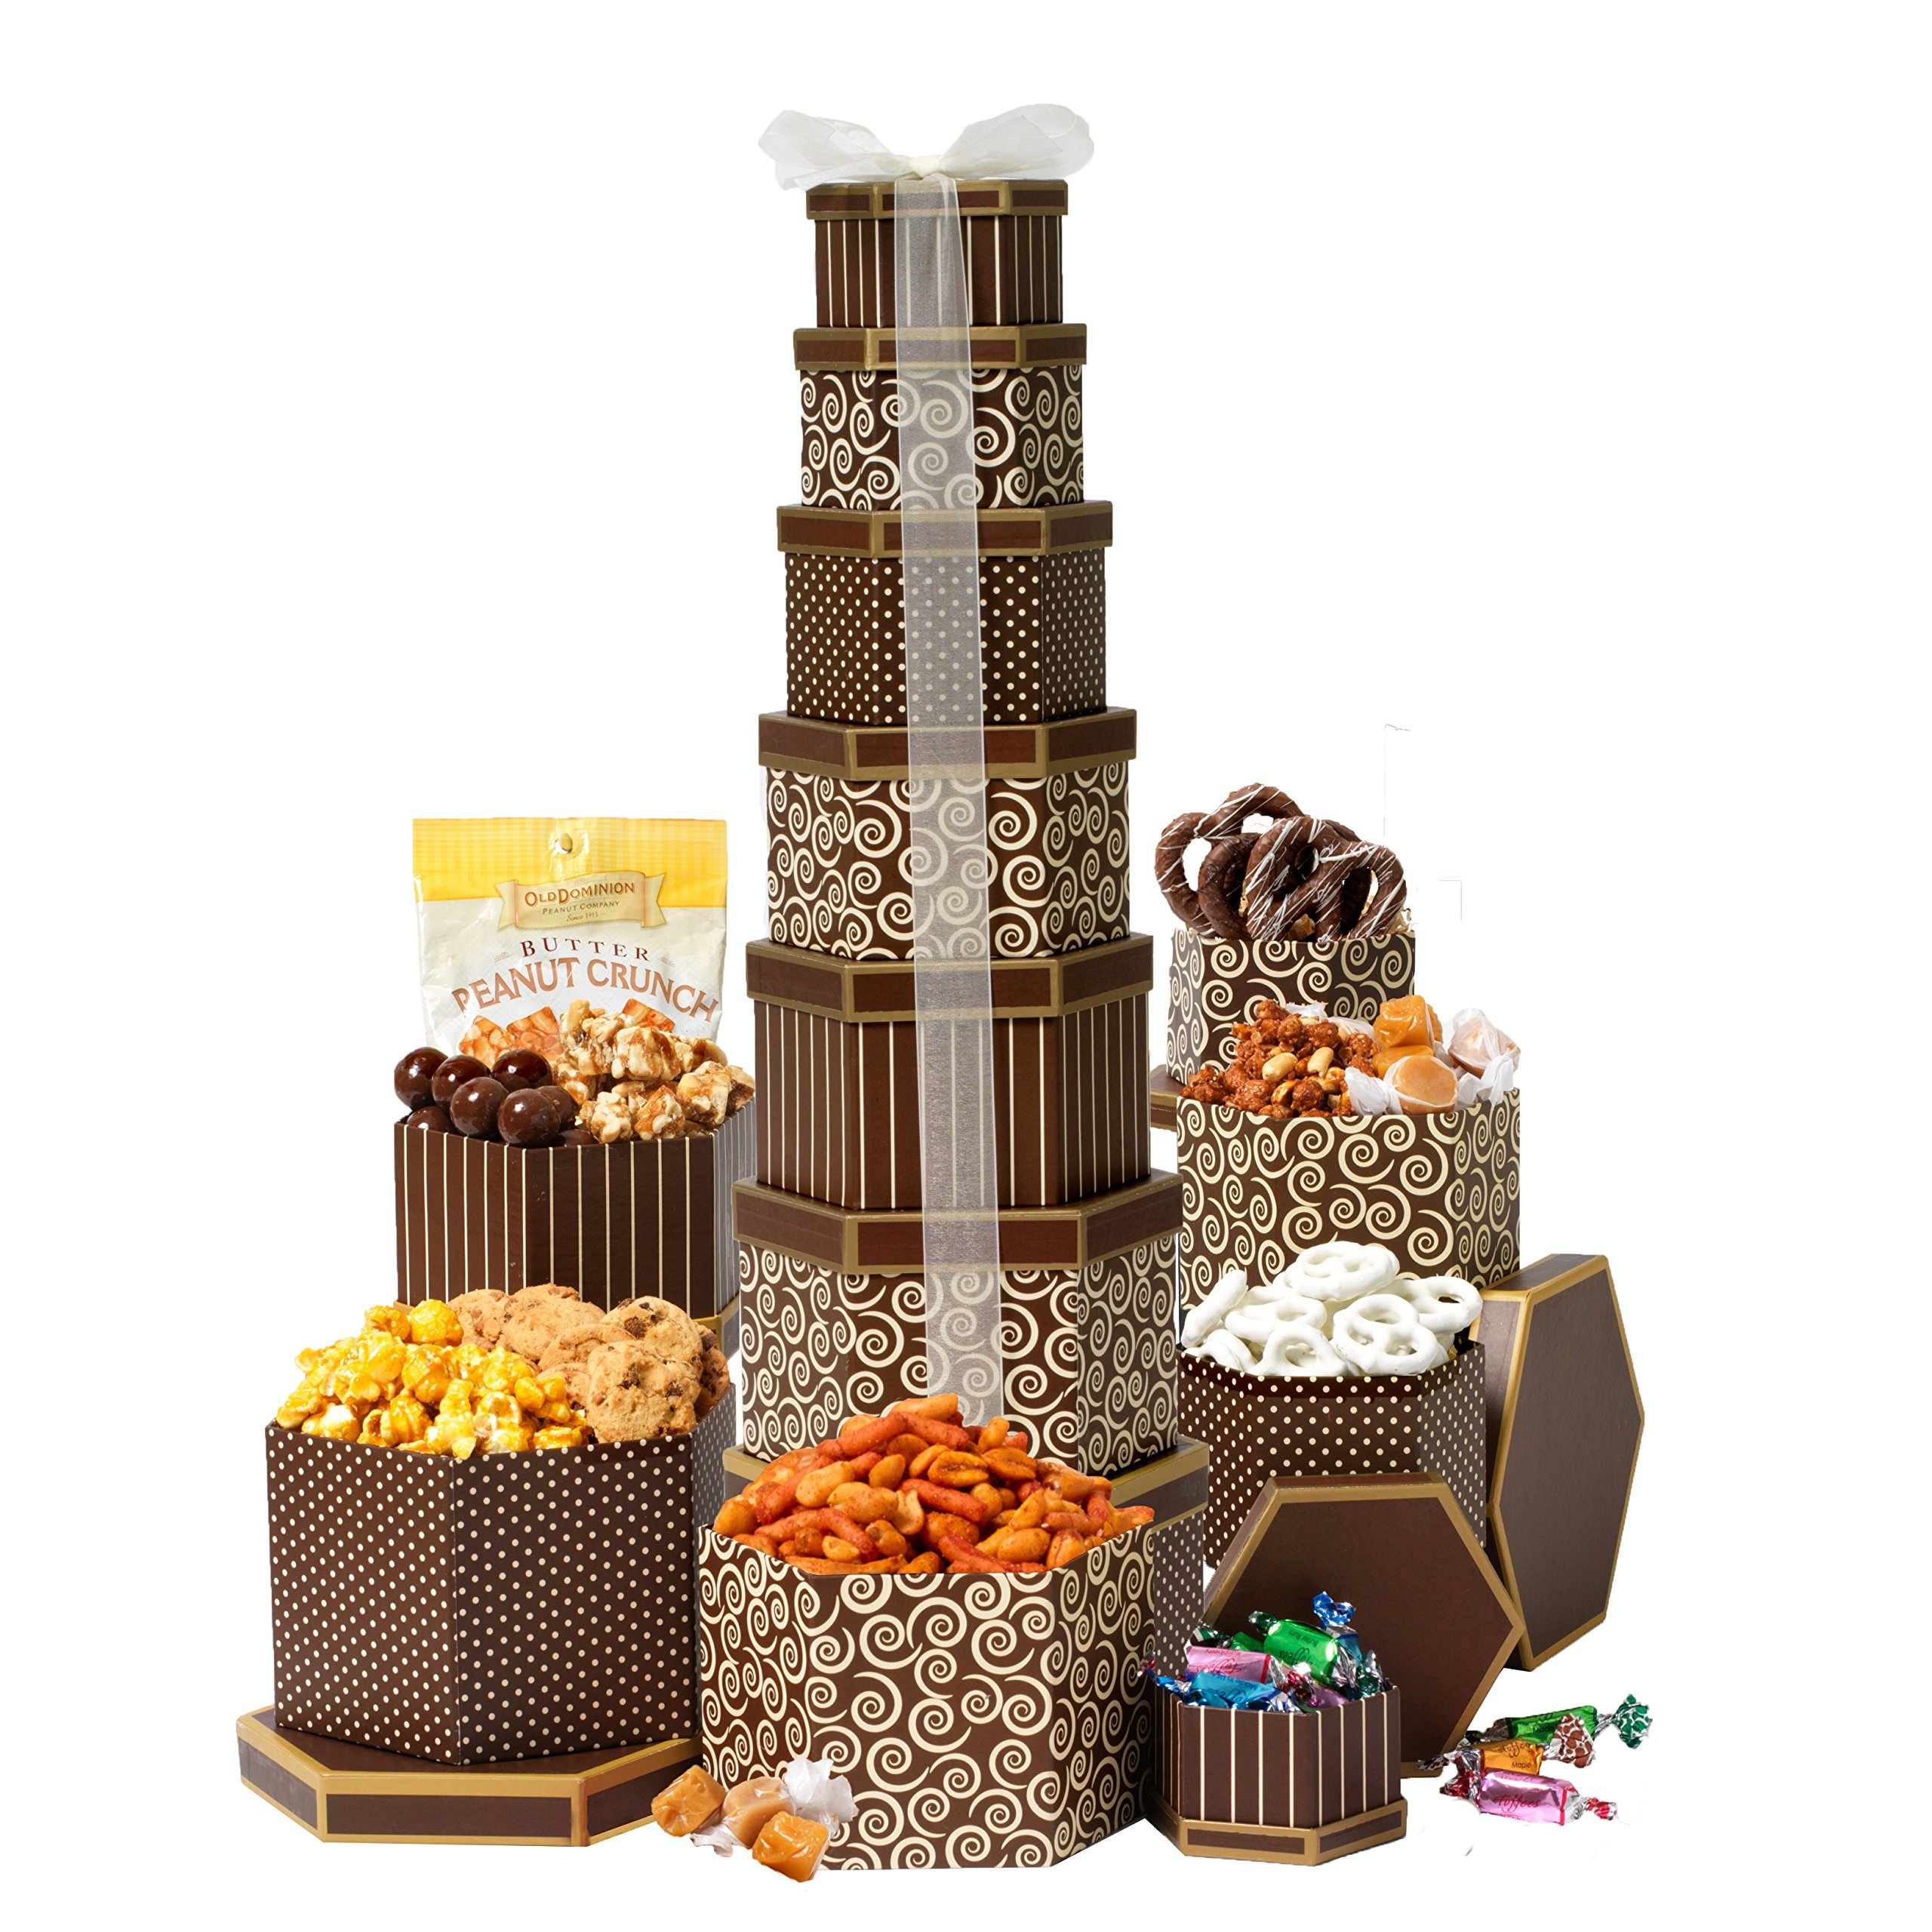 Broadway Basketeers Gift Tower Deluxe With 7 Gift boxes of Gourmet Chocolates, Nuts, Sweets & More. Stands Two Feet High